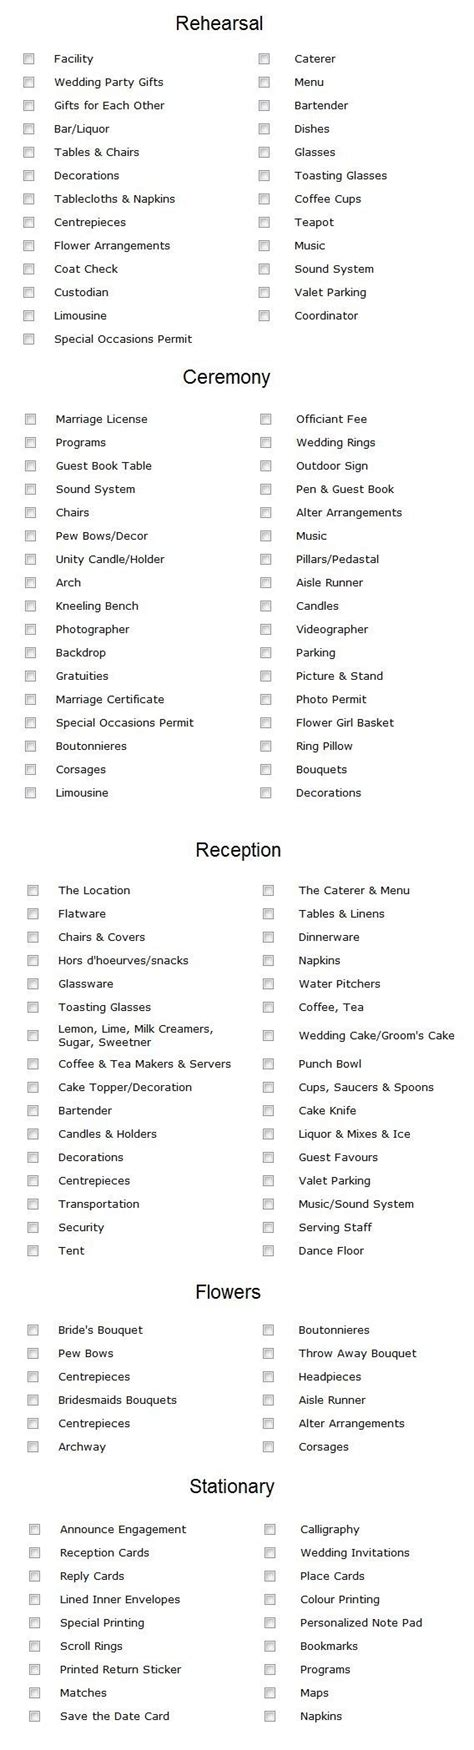 Wedding Checklist Everything You Need by Top 5 Wedding Planning Checklists To Keep You On Track